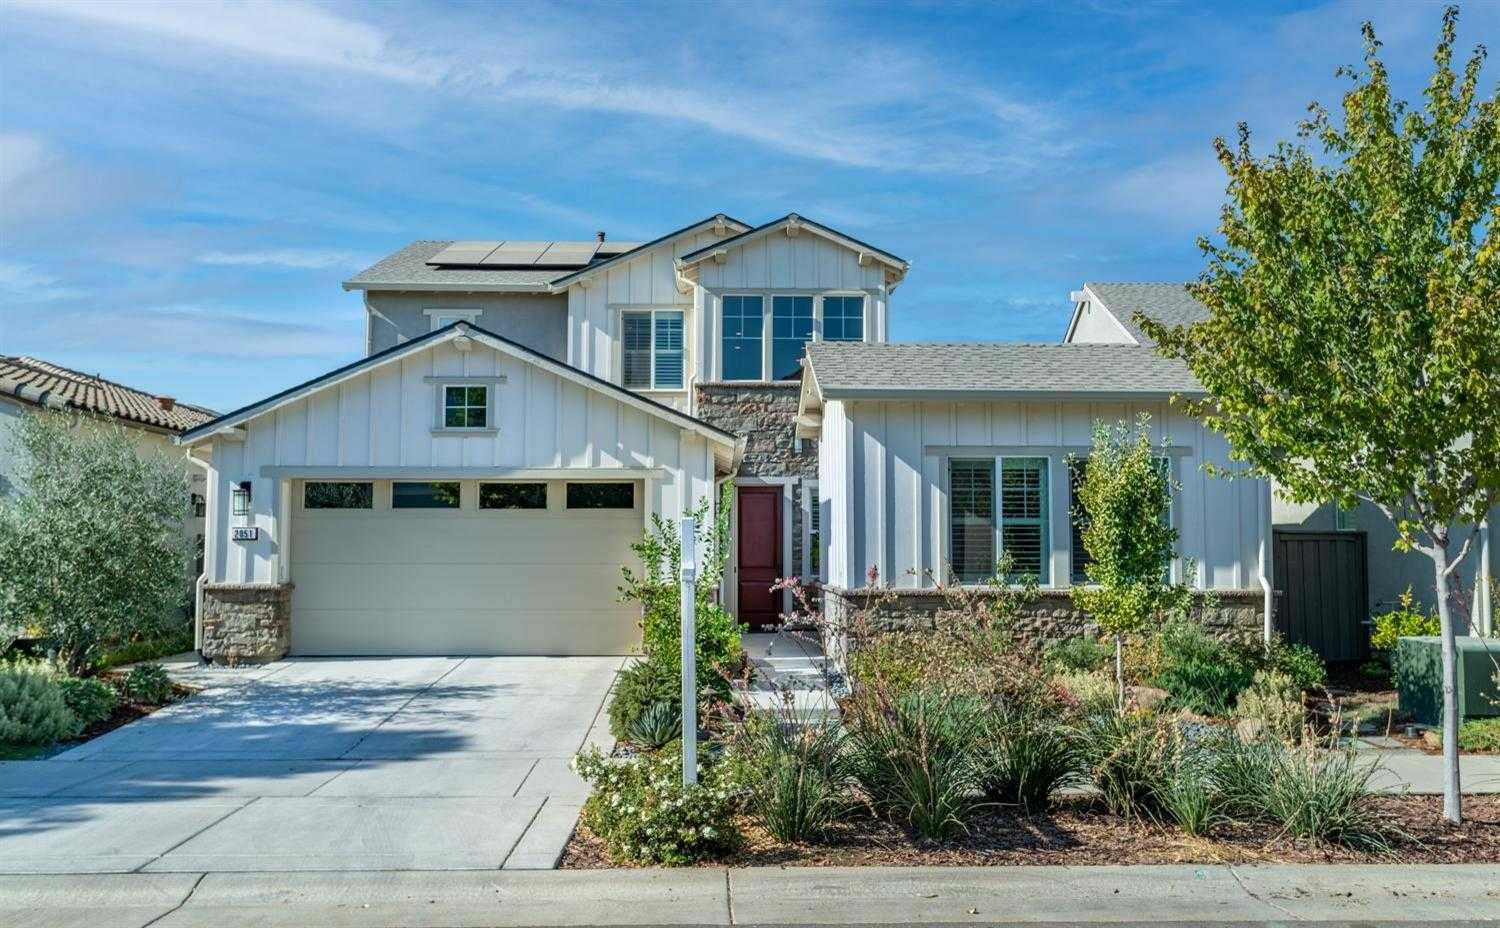 $1,185,000 - 5Br/4Ba -  for Sale in Cannery, Davis